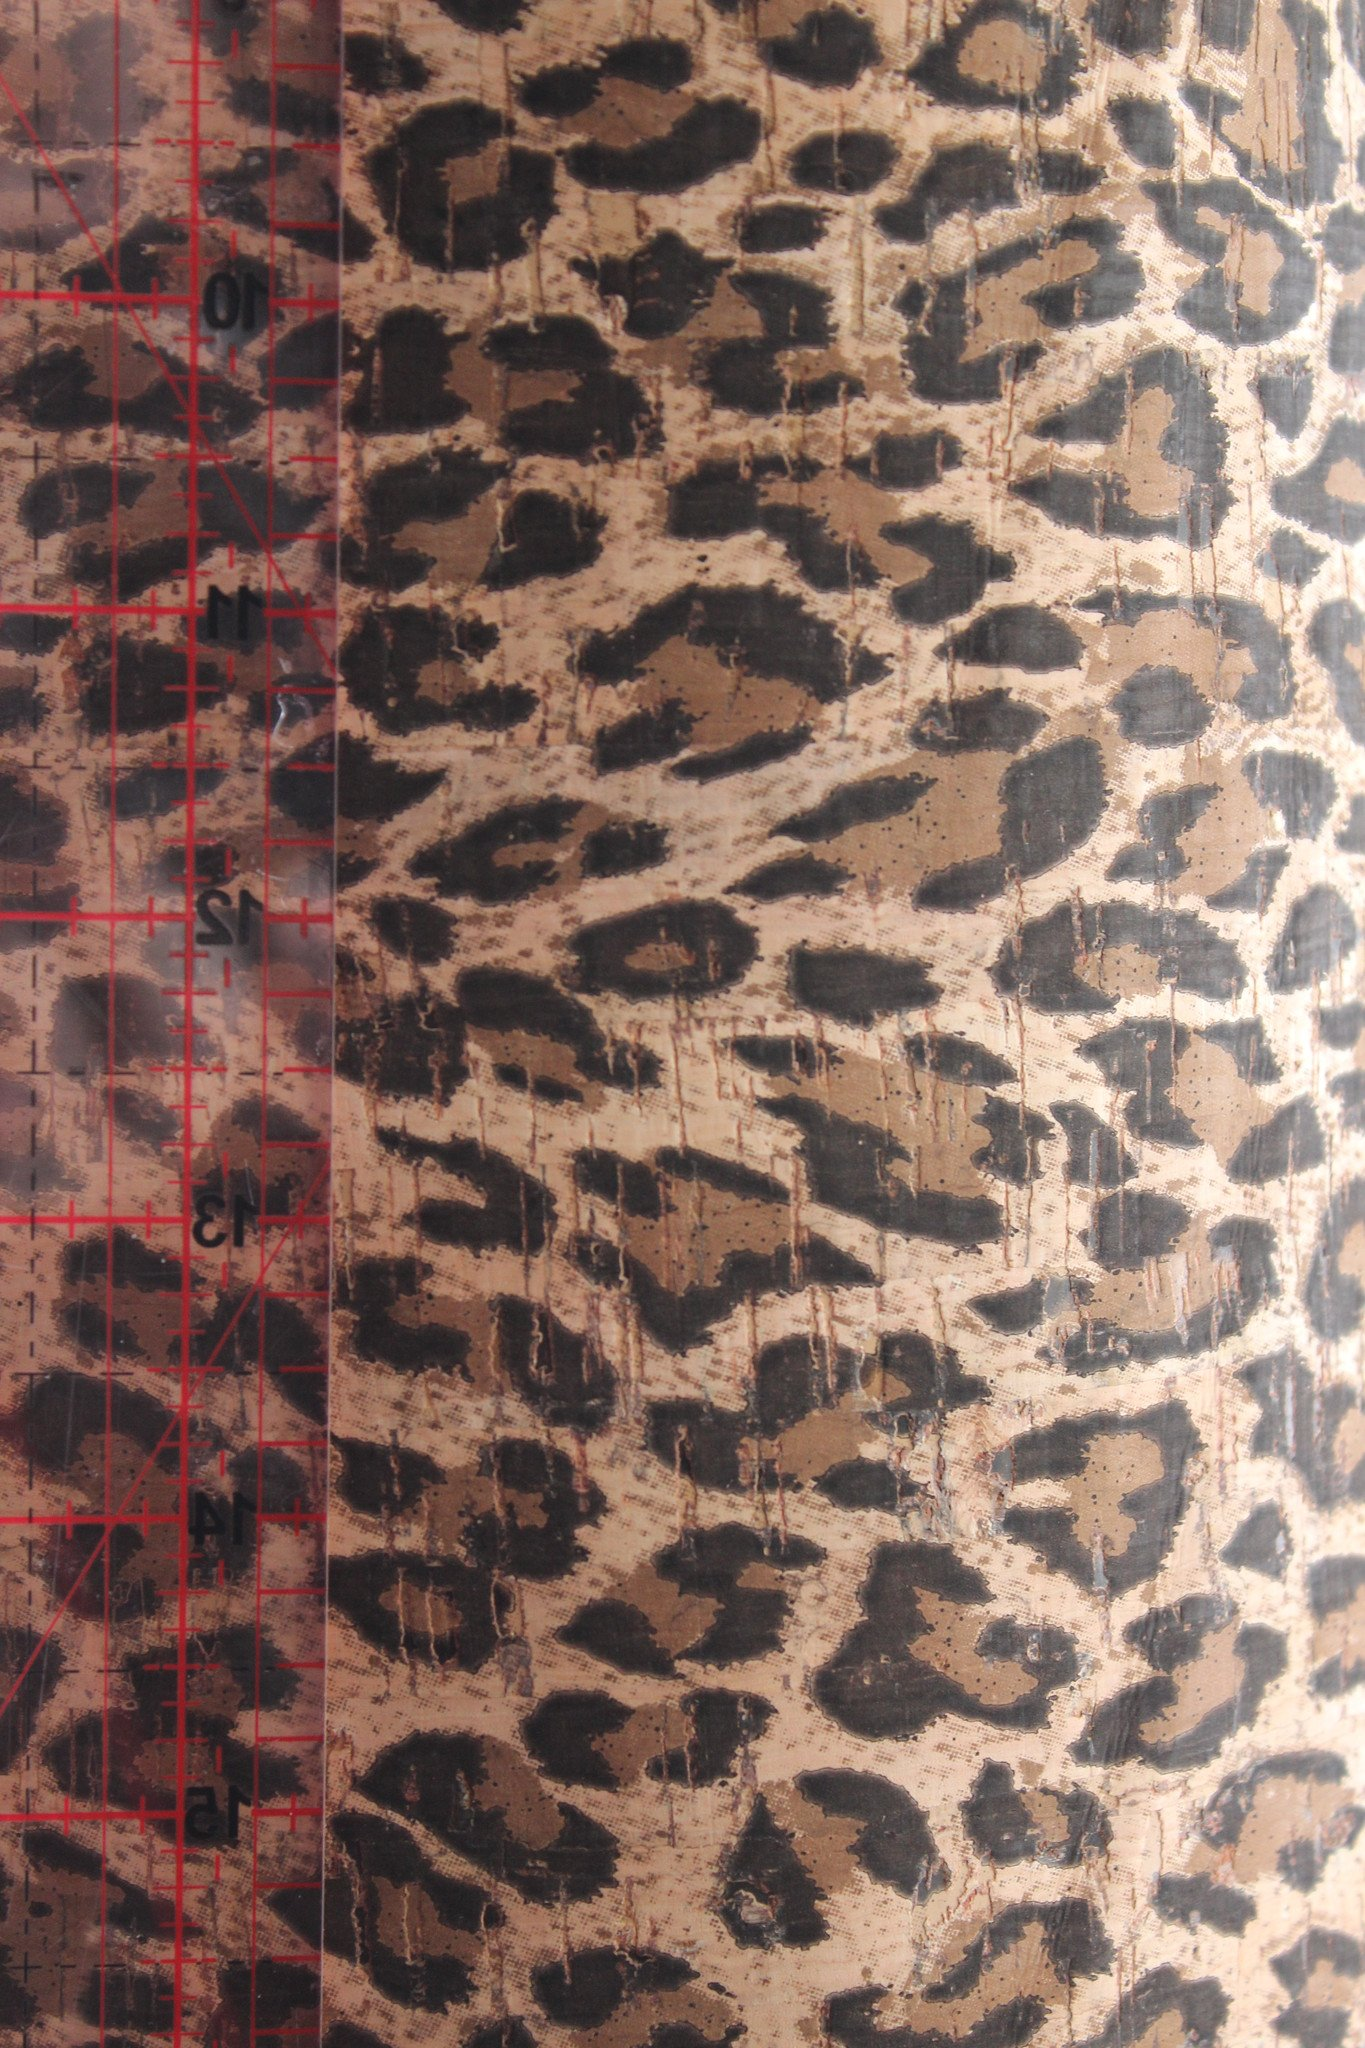 Printed Leopard Cork Fabric (18x18)